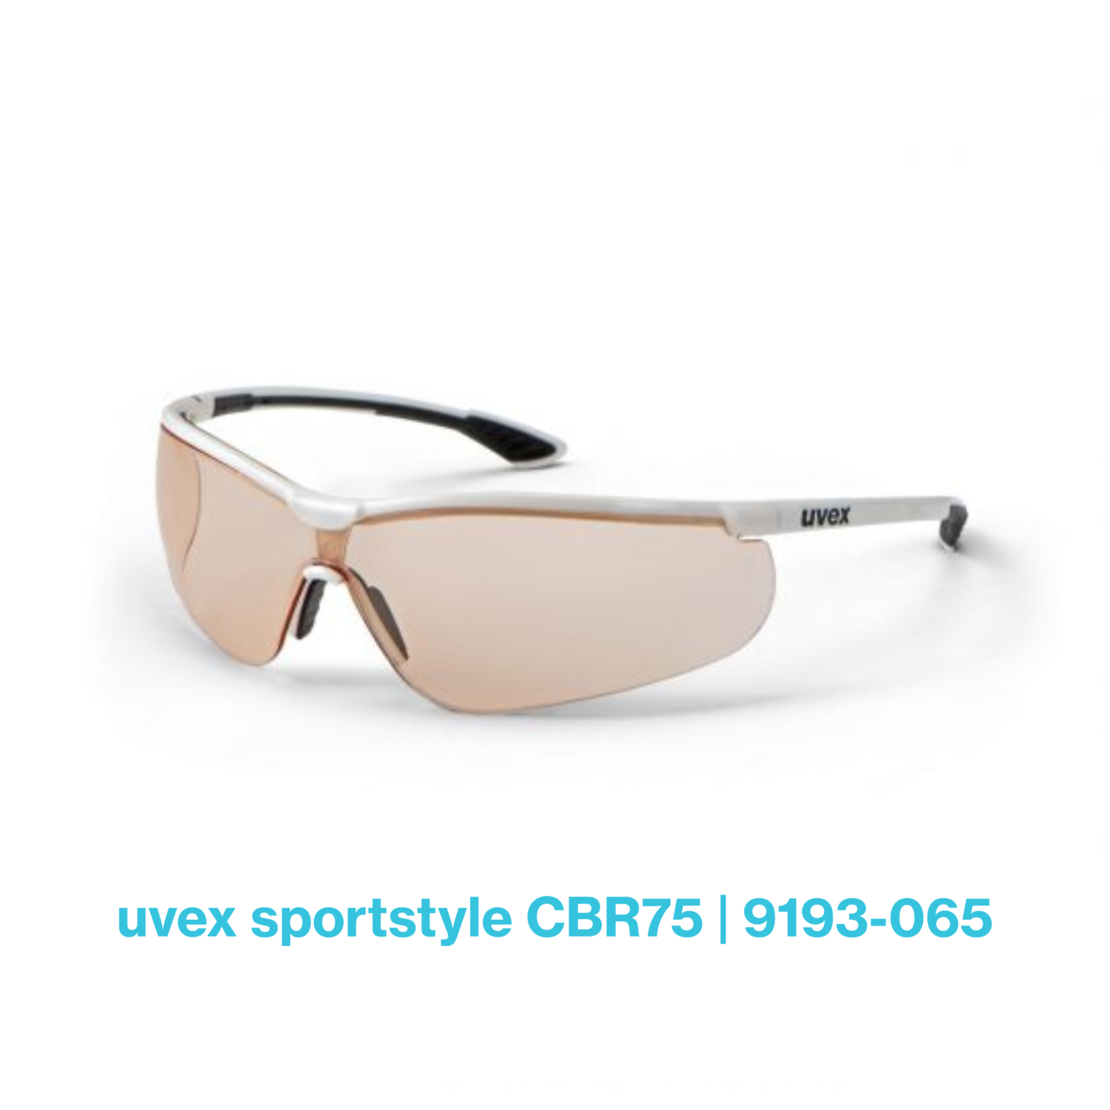 uvex CBR glasses for health workers